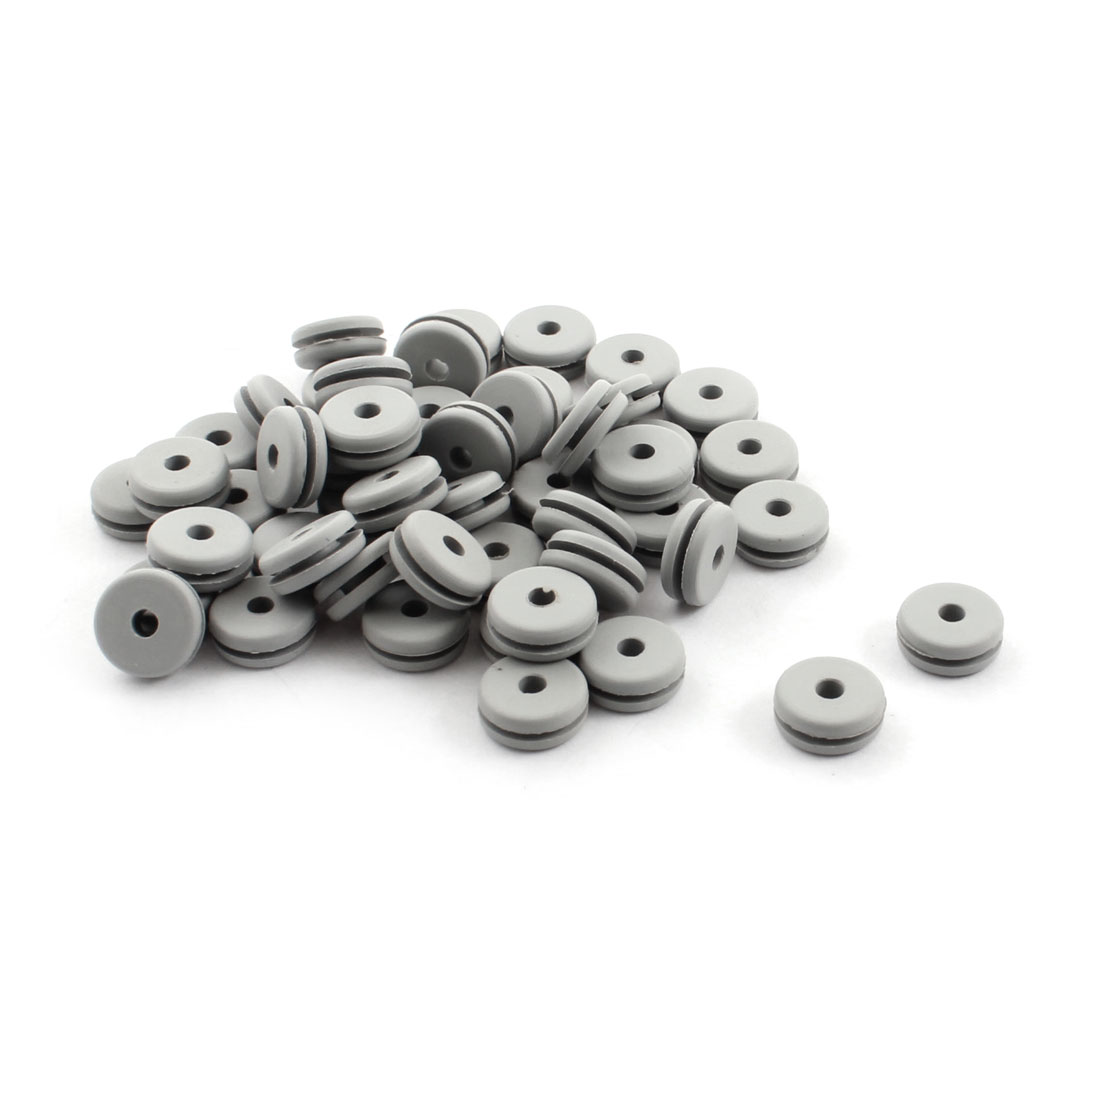 50Pcs RC Spare Parts Canopy Rubber Grommet 2.8x5.5x11x4.5mm for 600 Size Helicopter